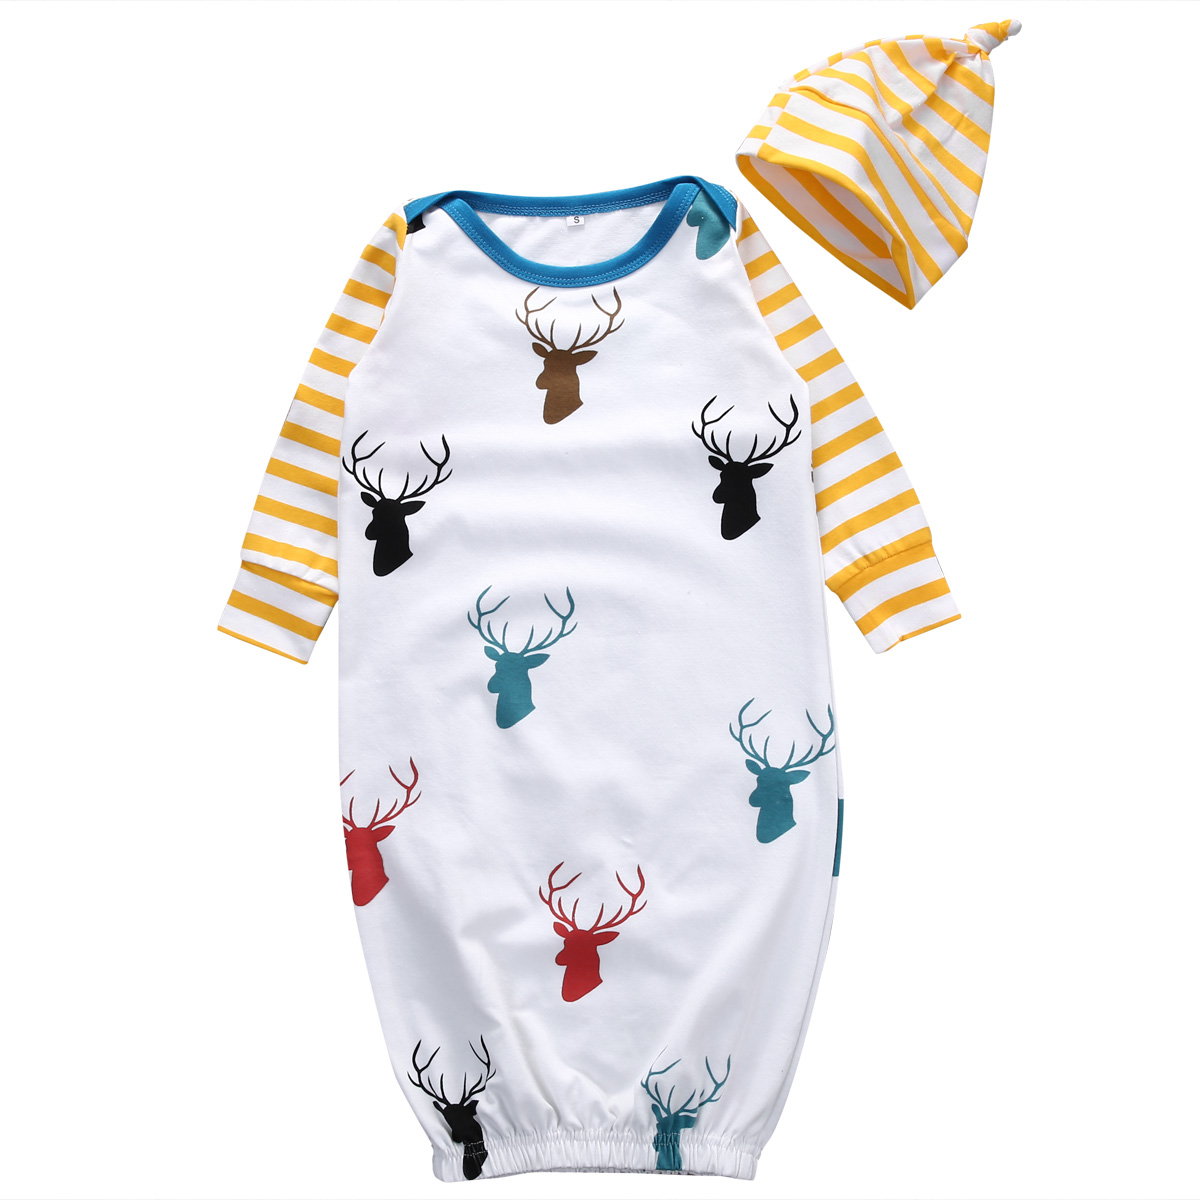 2pcs Toddler Newborn Infant Baby Girls Boy Deer Romper Striped Hat Outfits Casual Clothes Sleepwear Pjs Set 2pcs set newborn floral baby girl clothes 2017 summer sleeveless cotton ruffles romper baby bodysuit headband outfits sunsuit